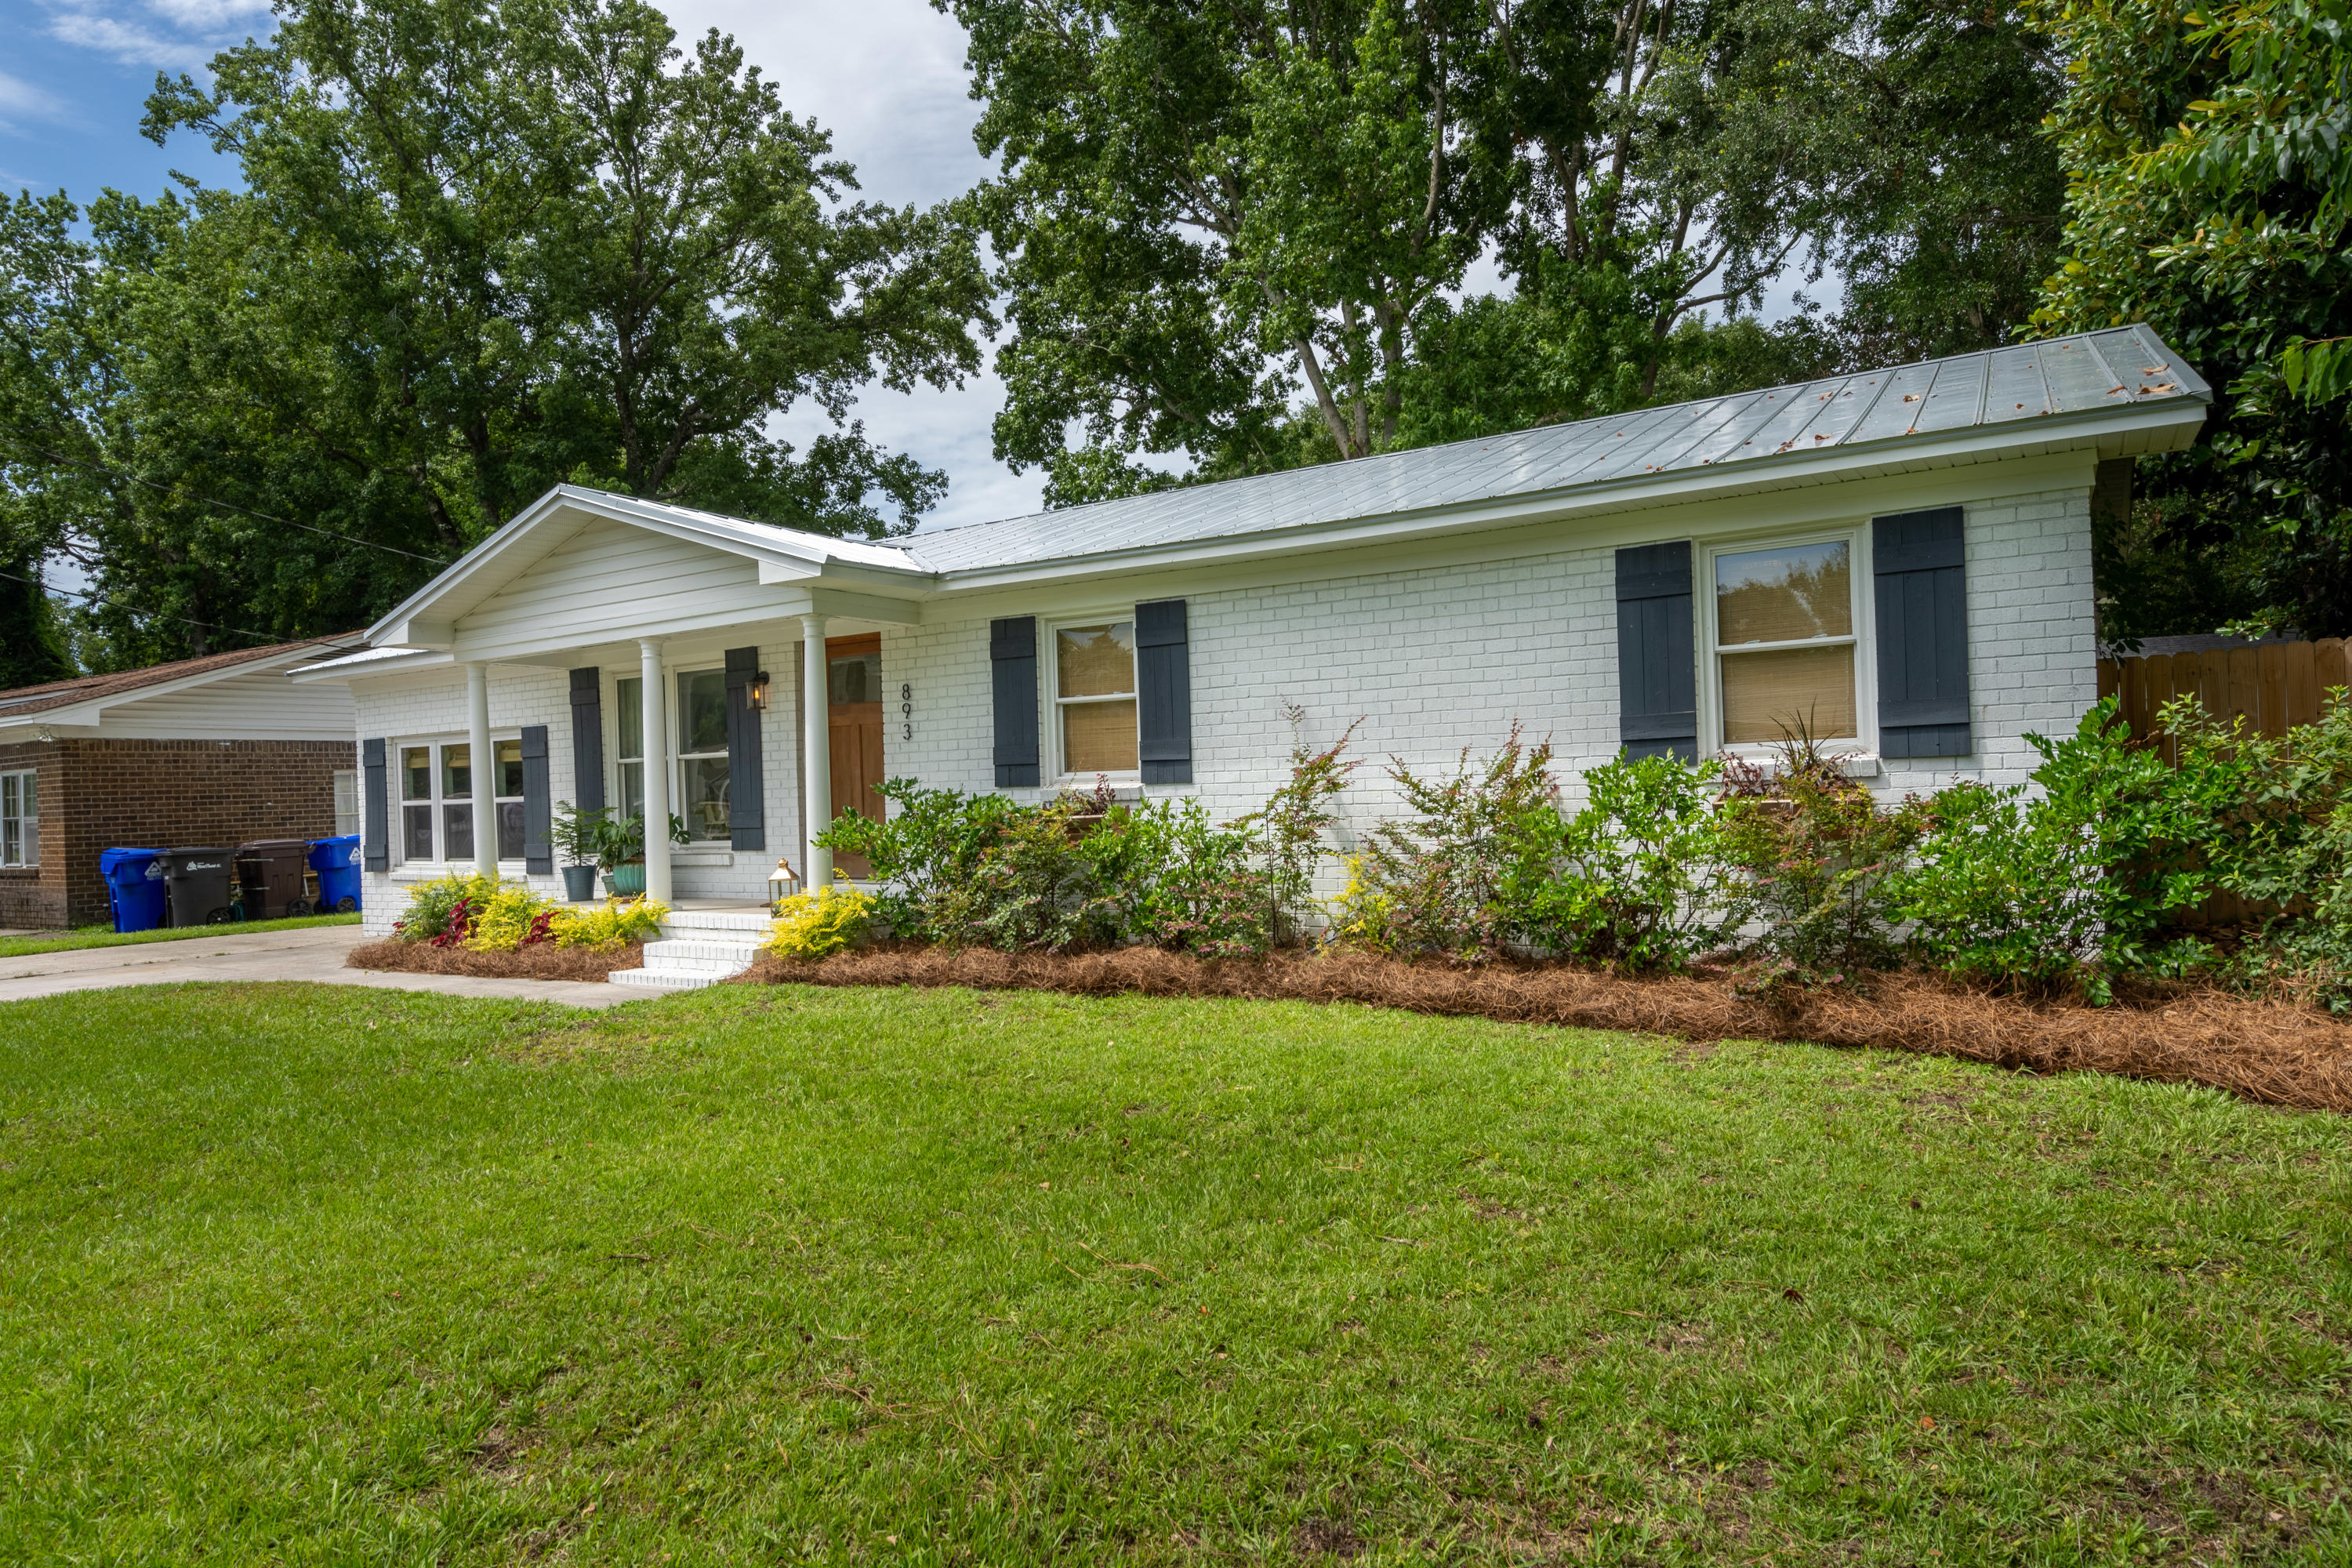 Old Mt Pleasant Homes For Sale - 893 Randall, Mount Pleasant, SC - 2